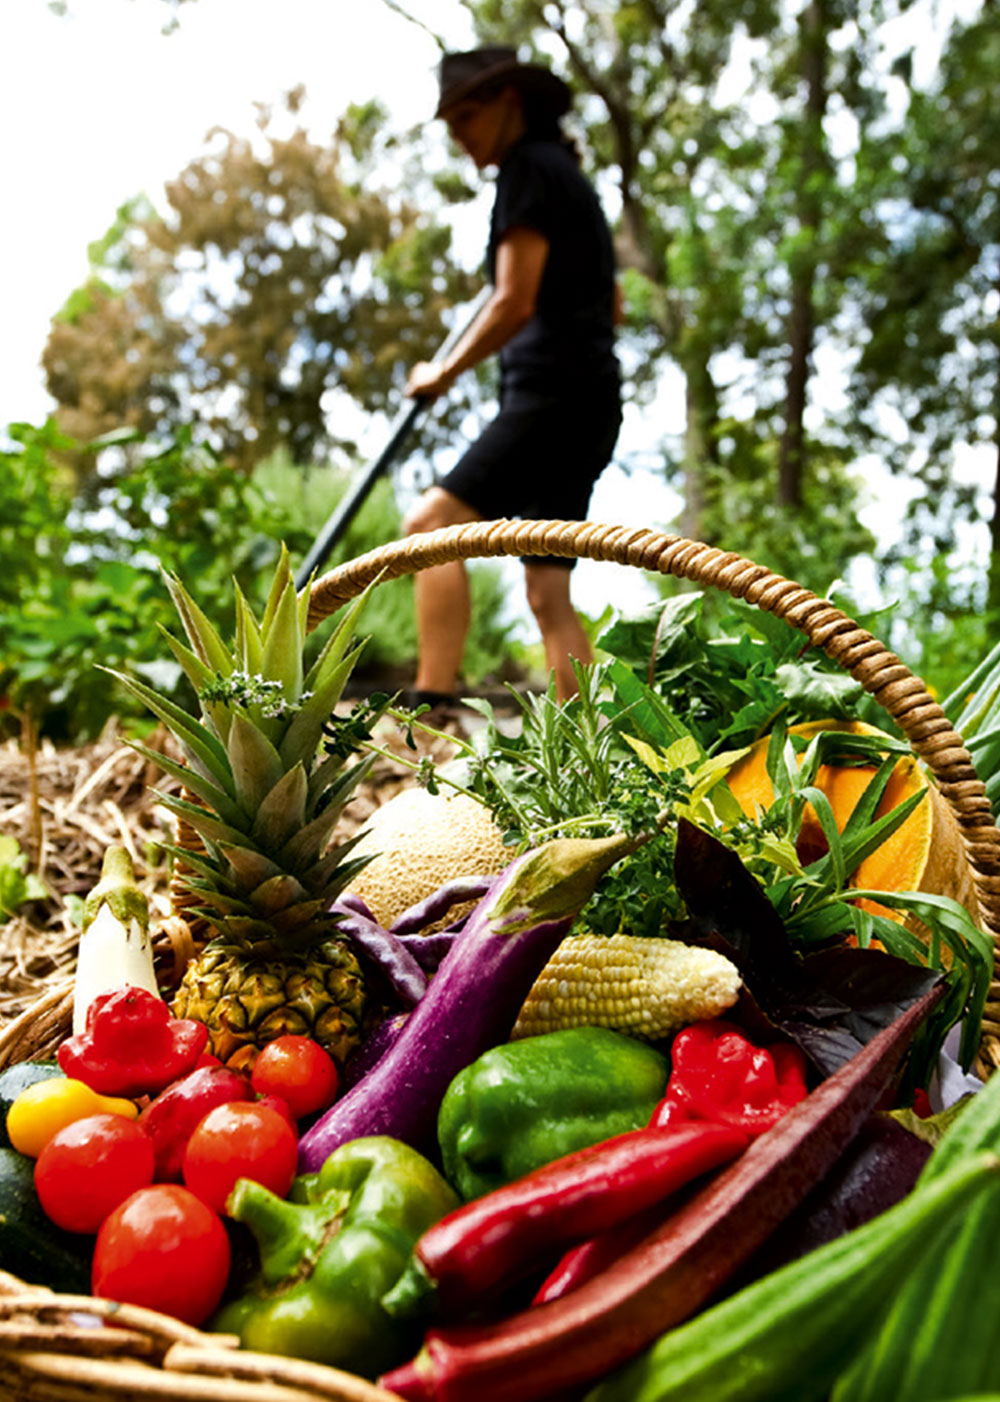 Basket of fruit and veggies in the garden